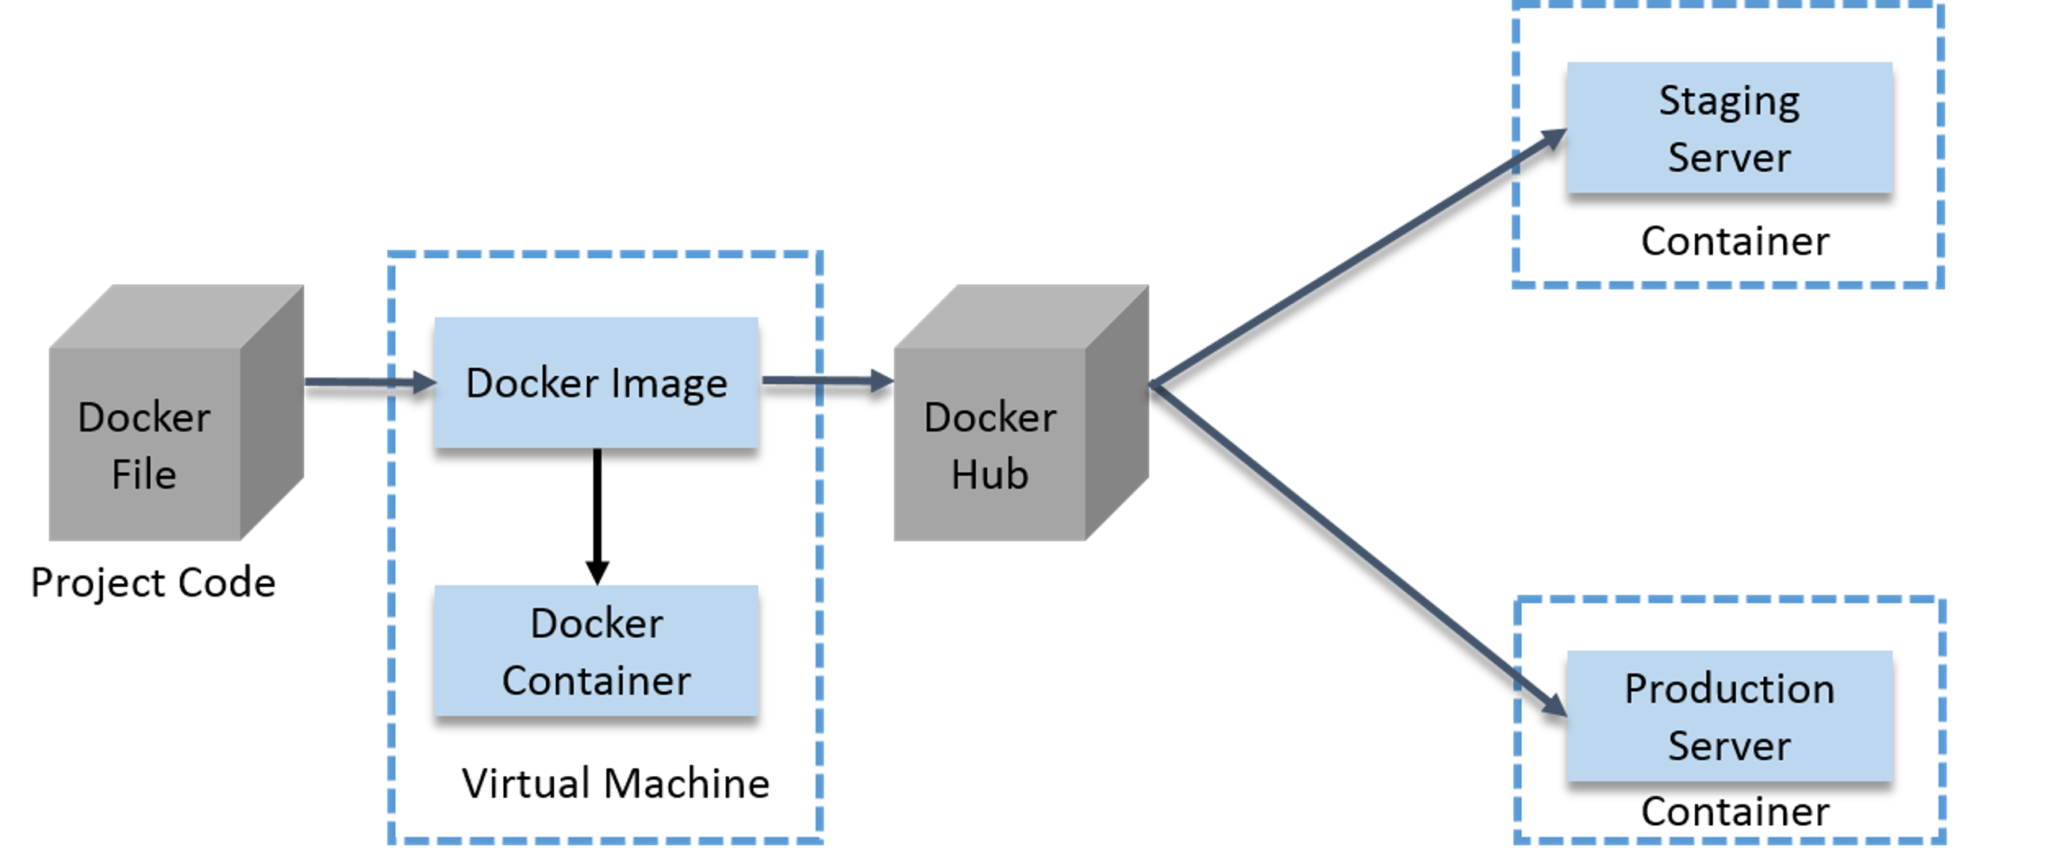 Software Containerization Using Docker - How To Become A DevOps Engineer - Edureka